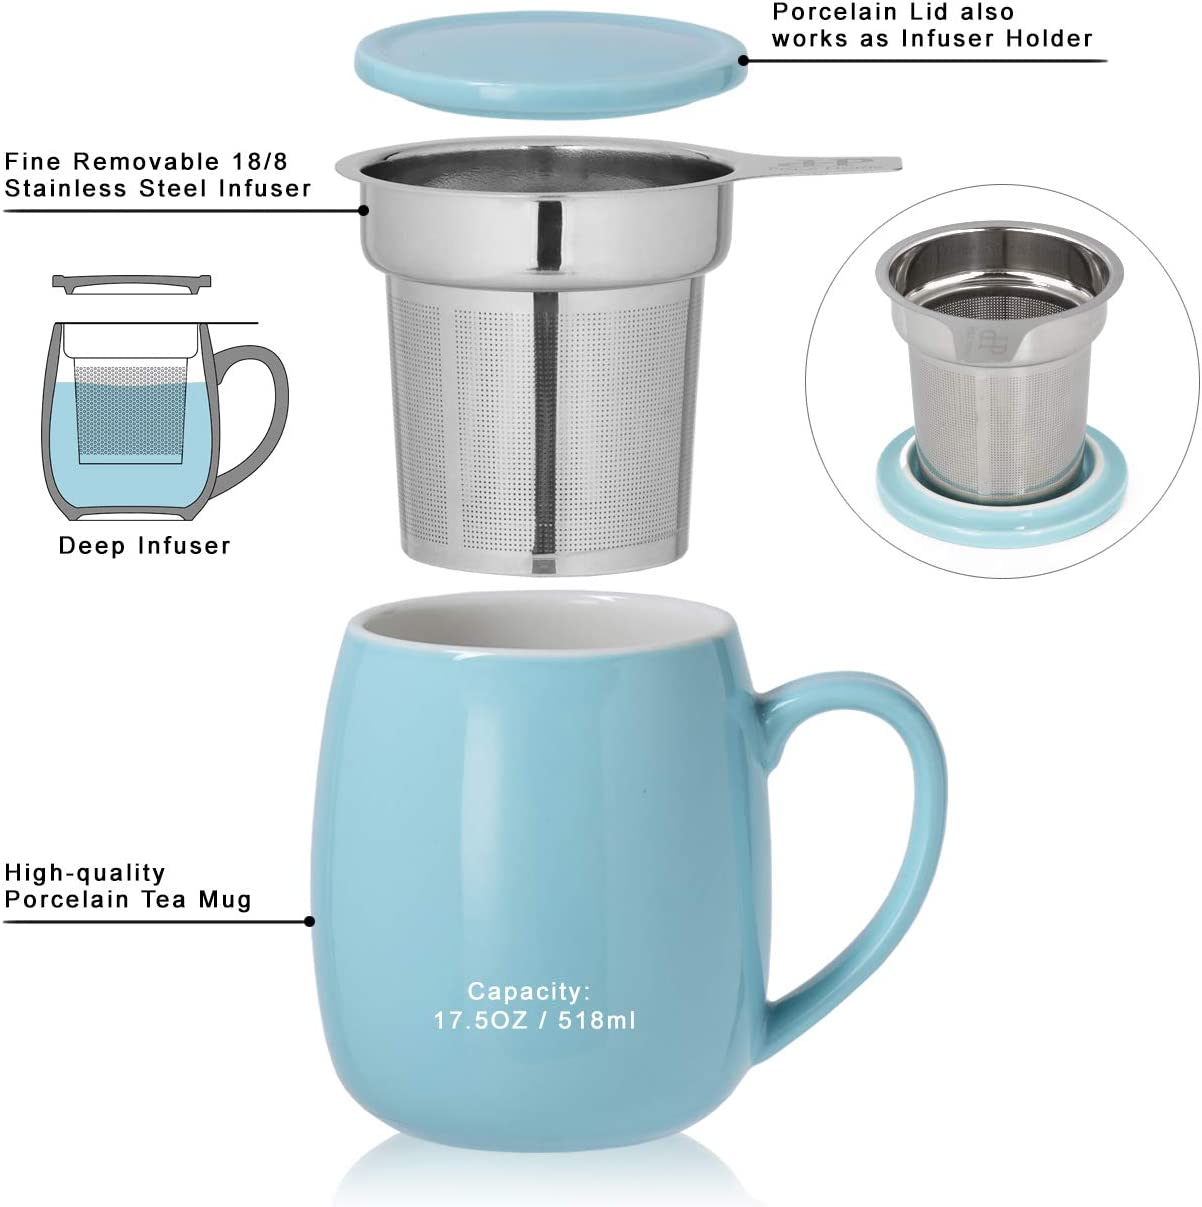 Peacehome Tea Cup Infuser Lid 17.5 OZ Large Ceramic Tea Mug with Strainer Navy